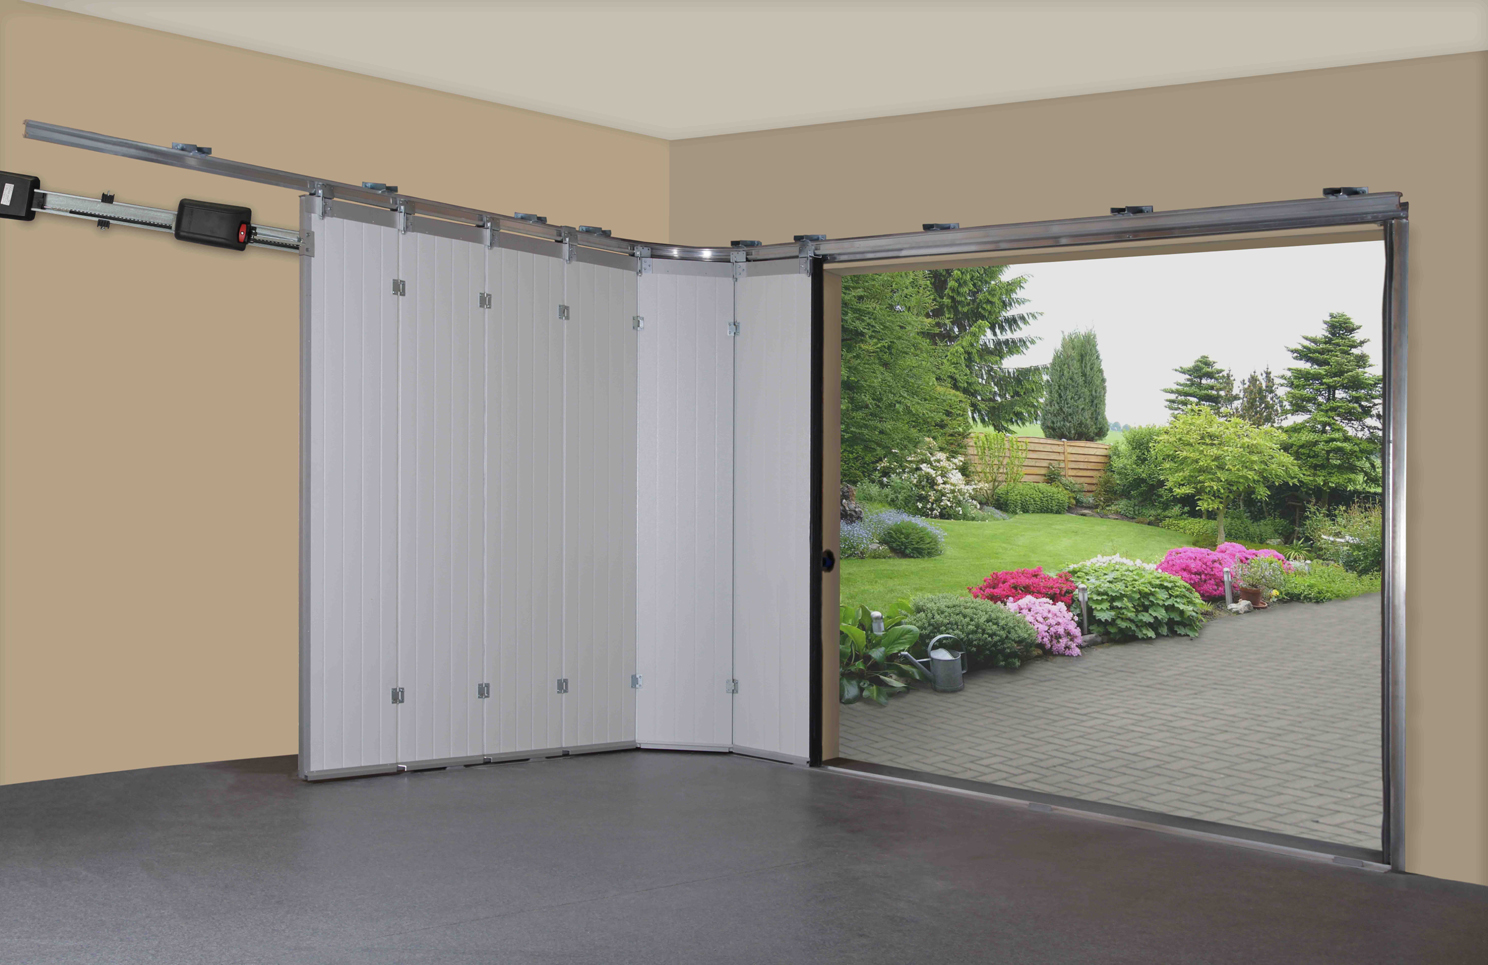 965 #728A41 Side Sliding Doors Ryterna Garage Doors pic Horizontal Garage Doors 37811488